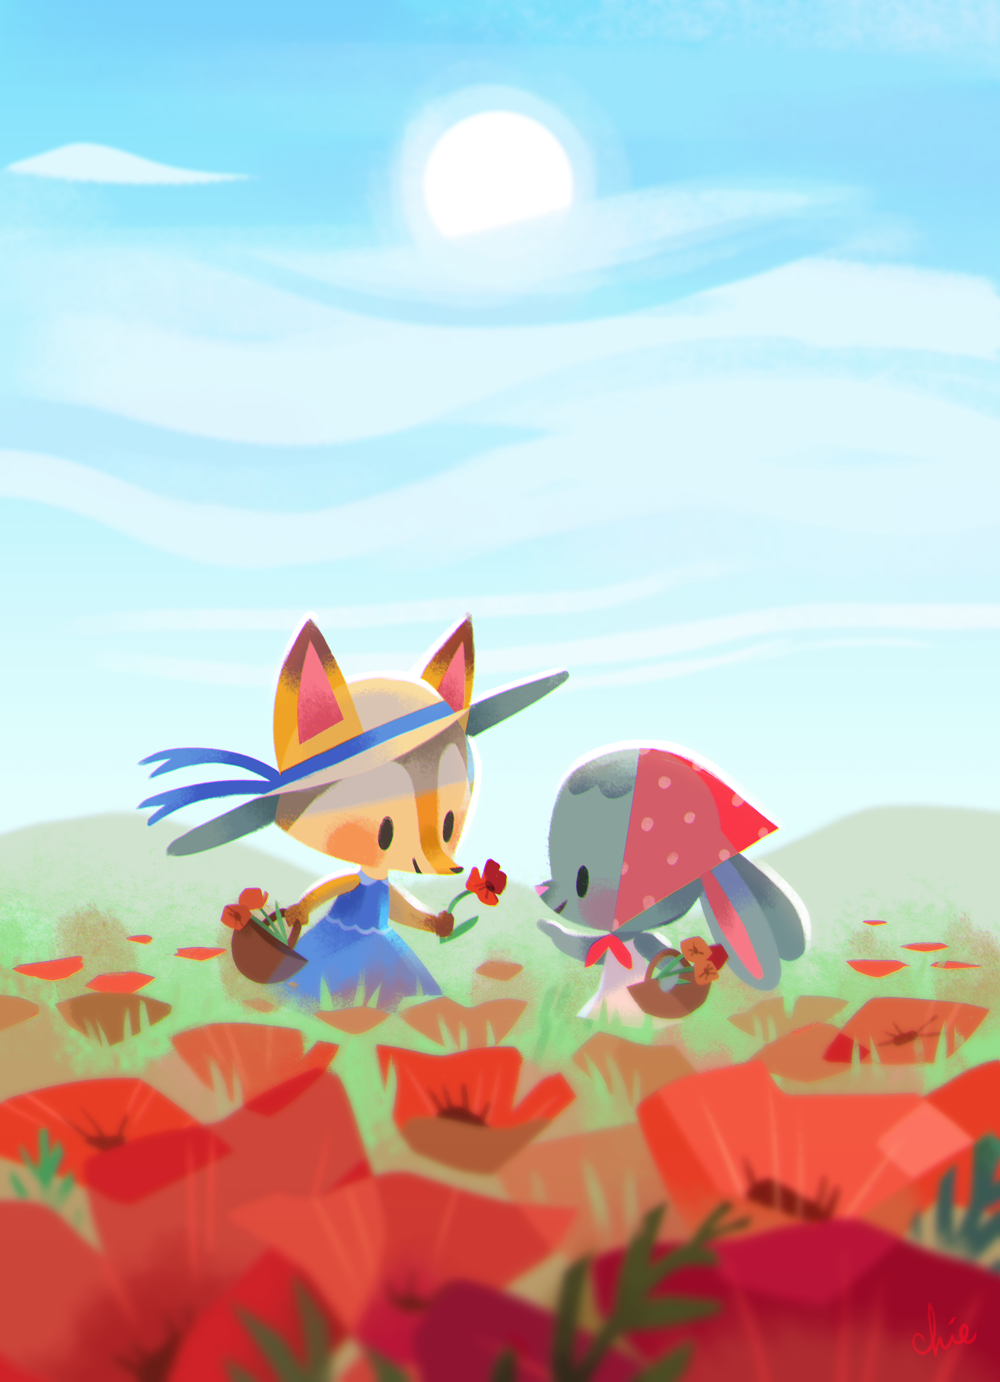 bunnyandFoxflowers_cropped_MODIFIED.png